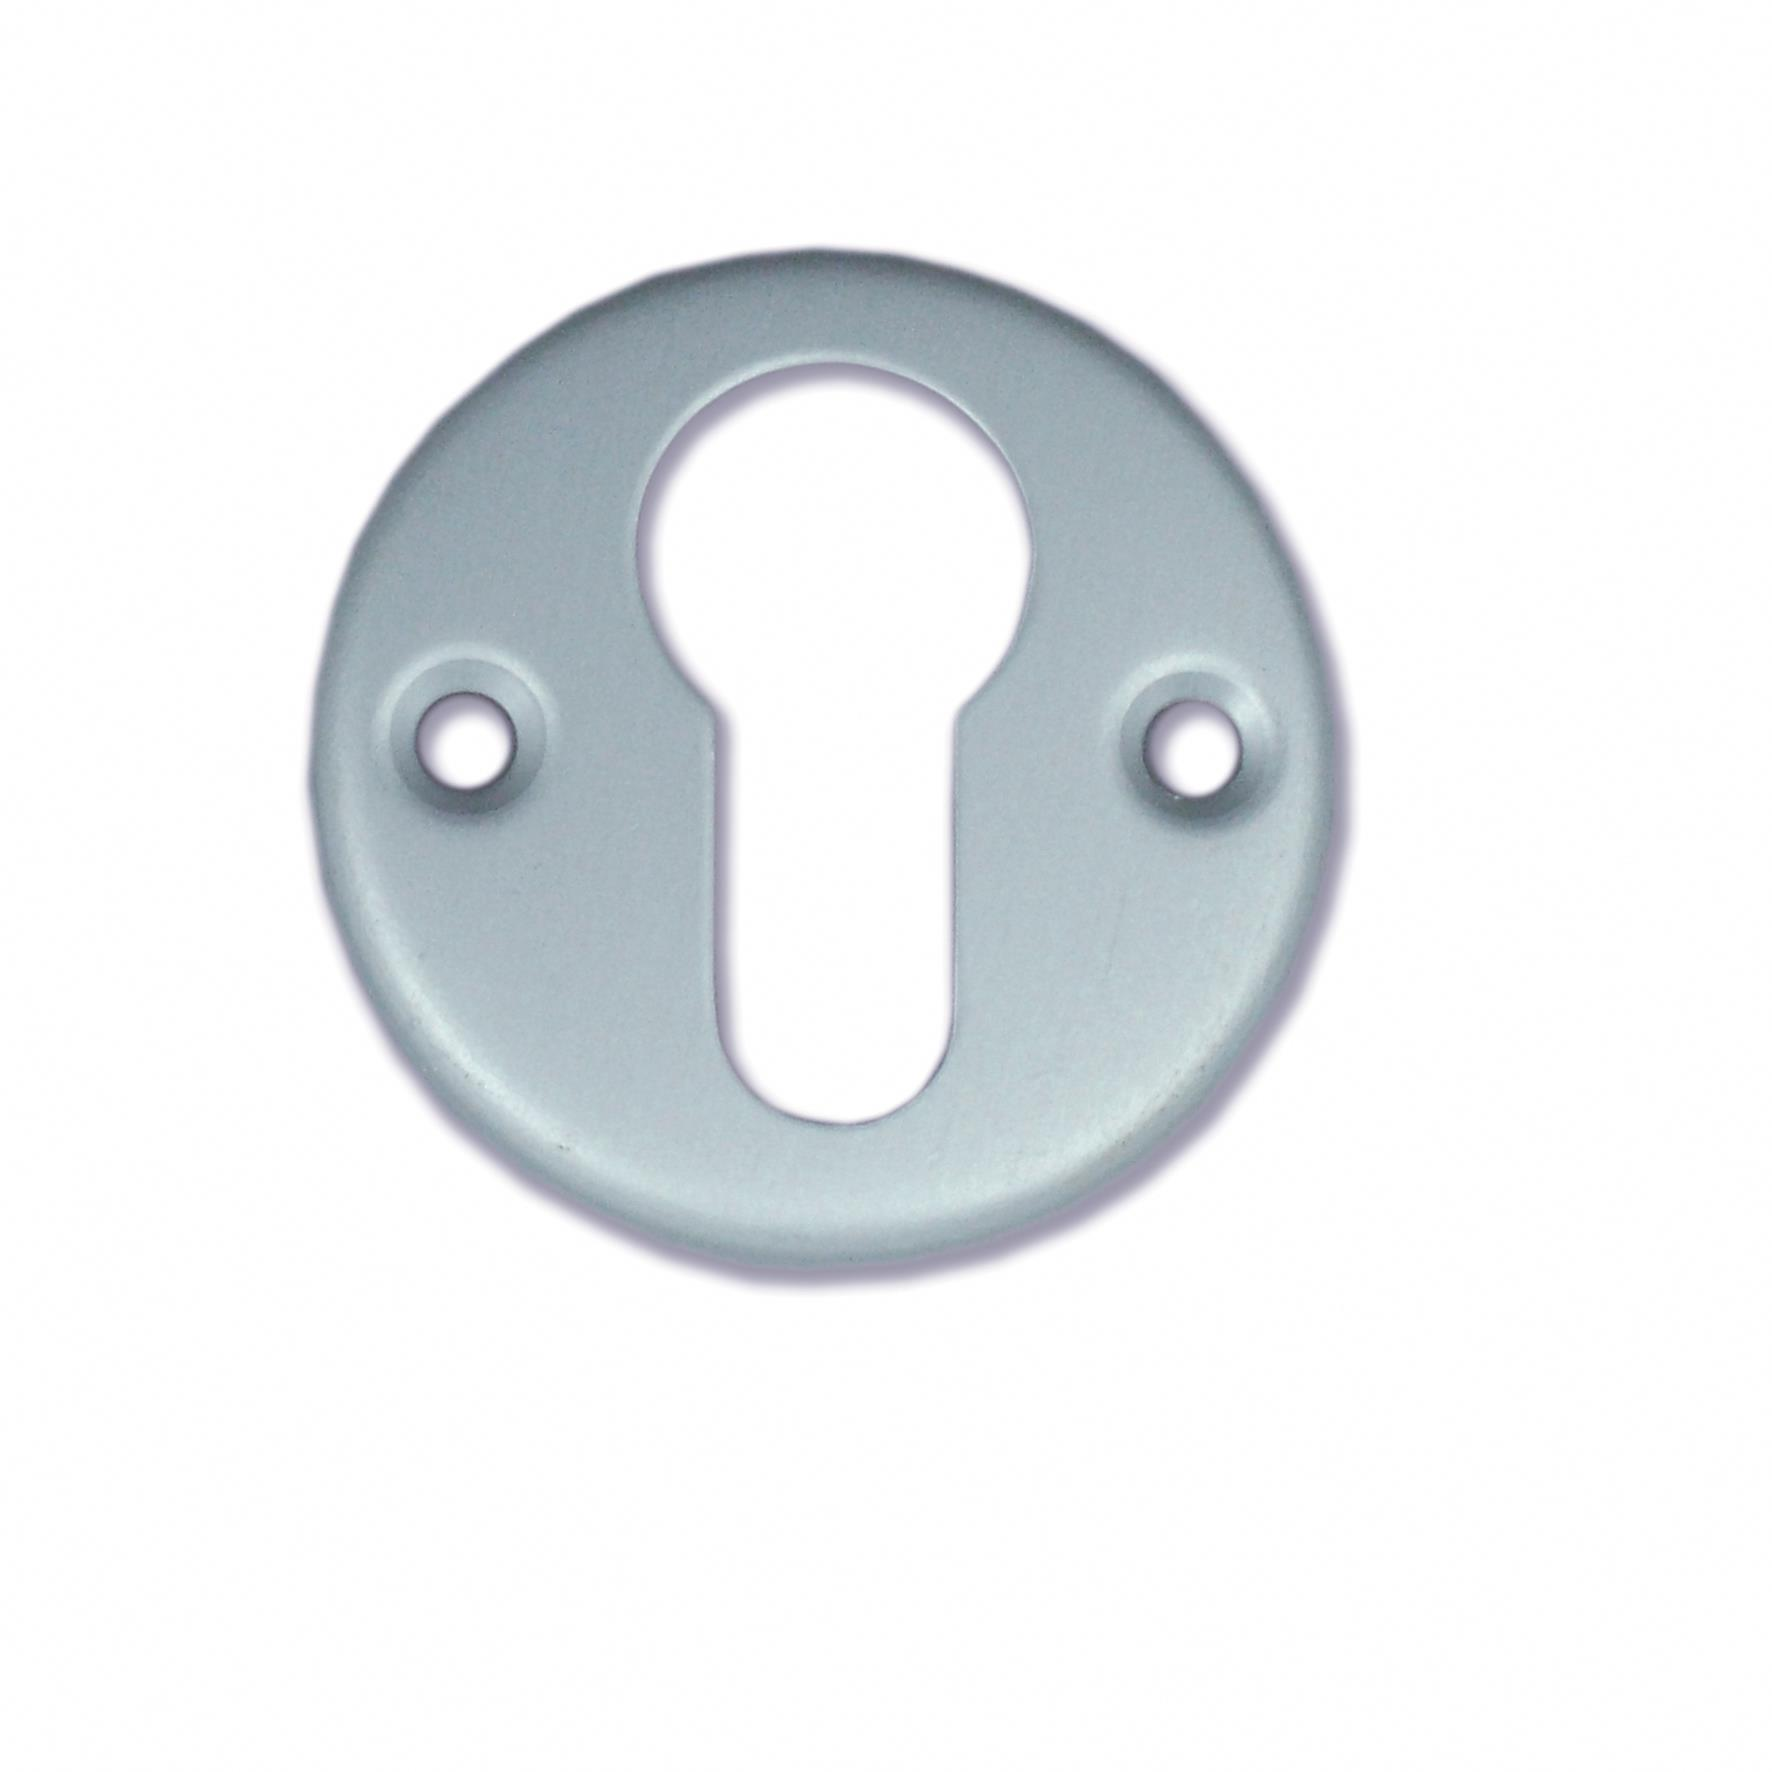 Aluminium Door Furniture Accessories